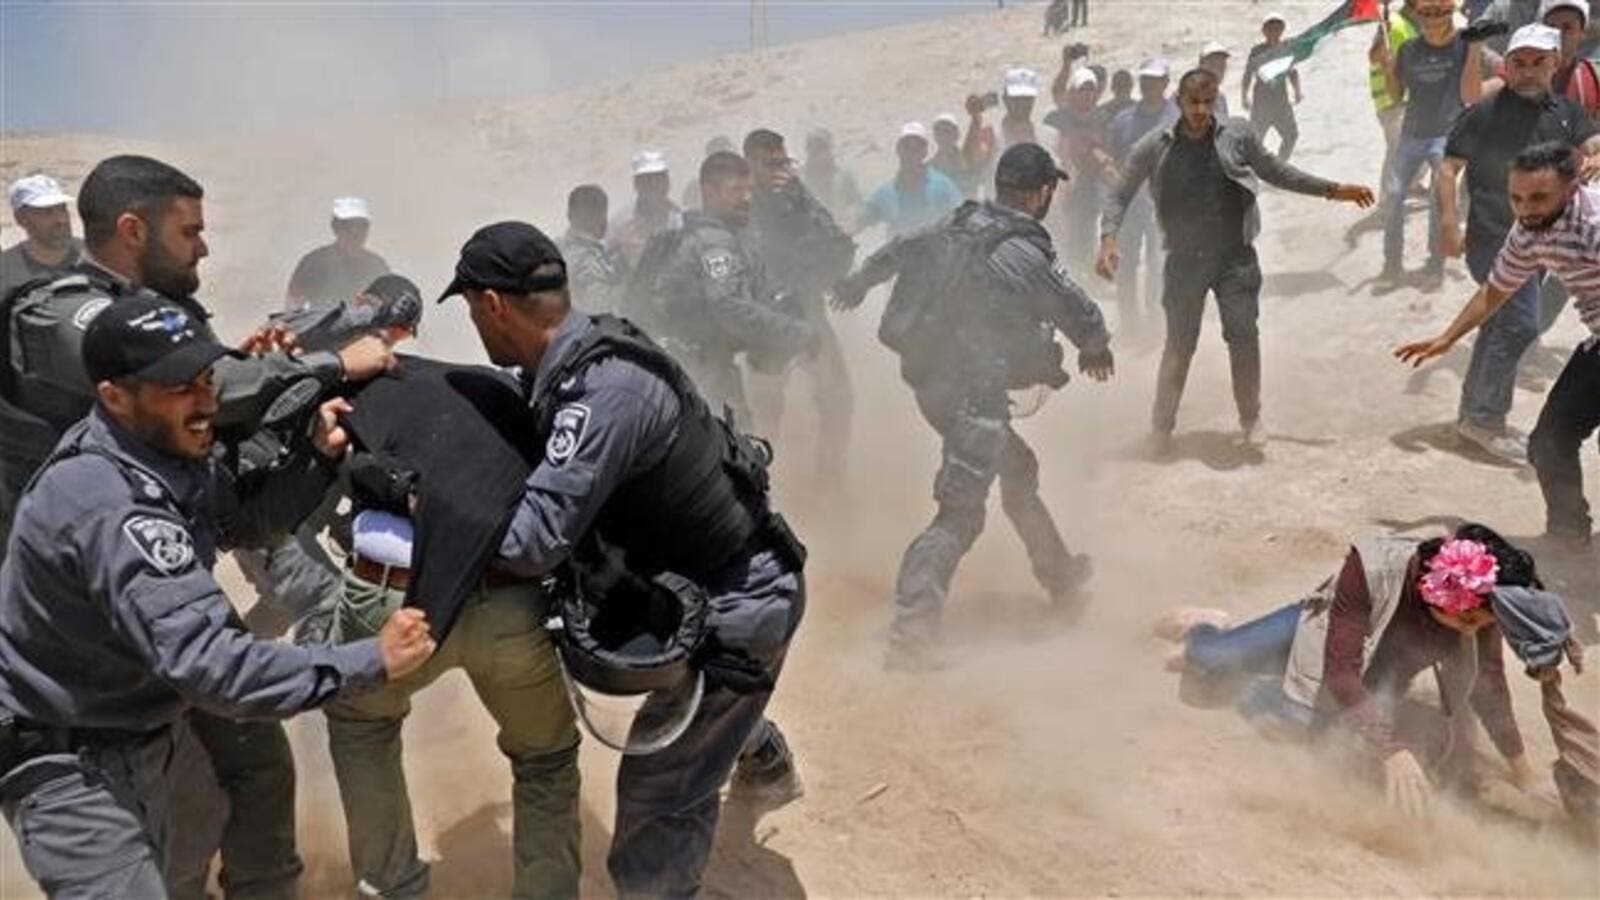 Protesters clash with Israeli police in the Palestinian Bedouin village of Khan al-Ahmar in the occupied West Bank on July 4, 2018. (AFP photo)